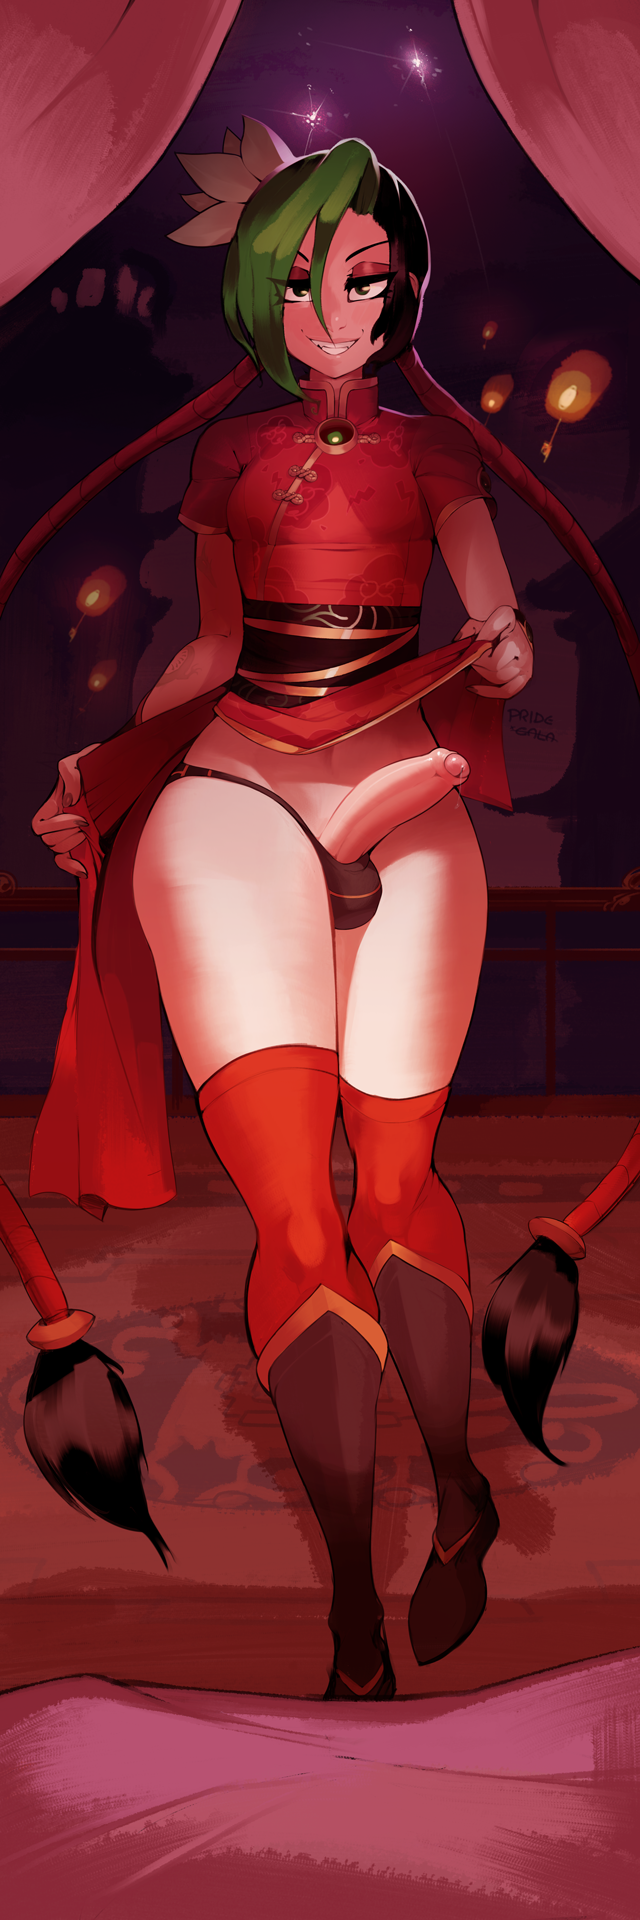 ruler 8 persei omicron lrrr of Rudolph with that ass so tight